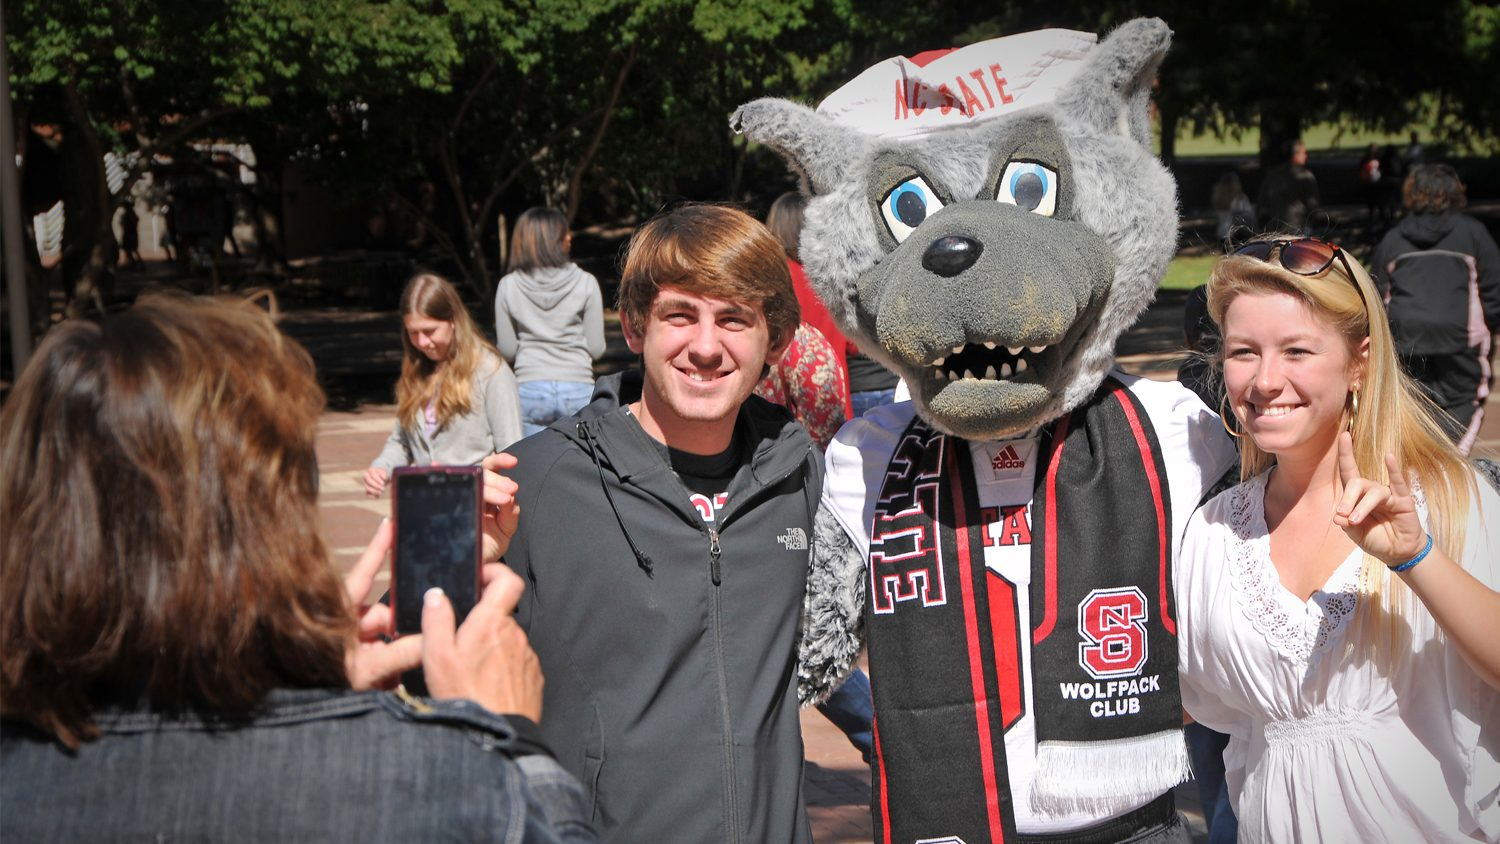 NC State students pose for a photo with college mascot Mr. Wuf.